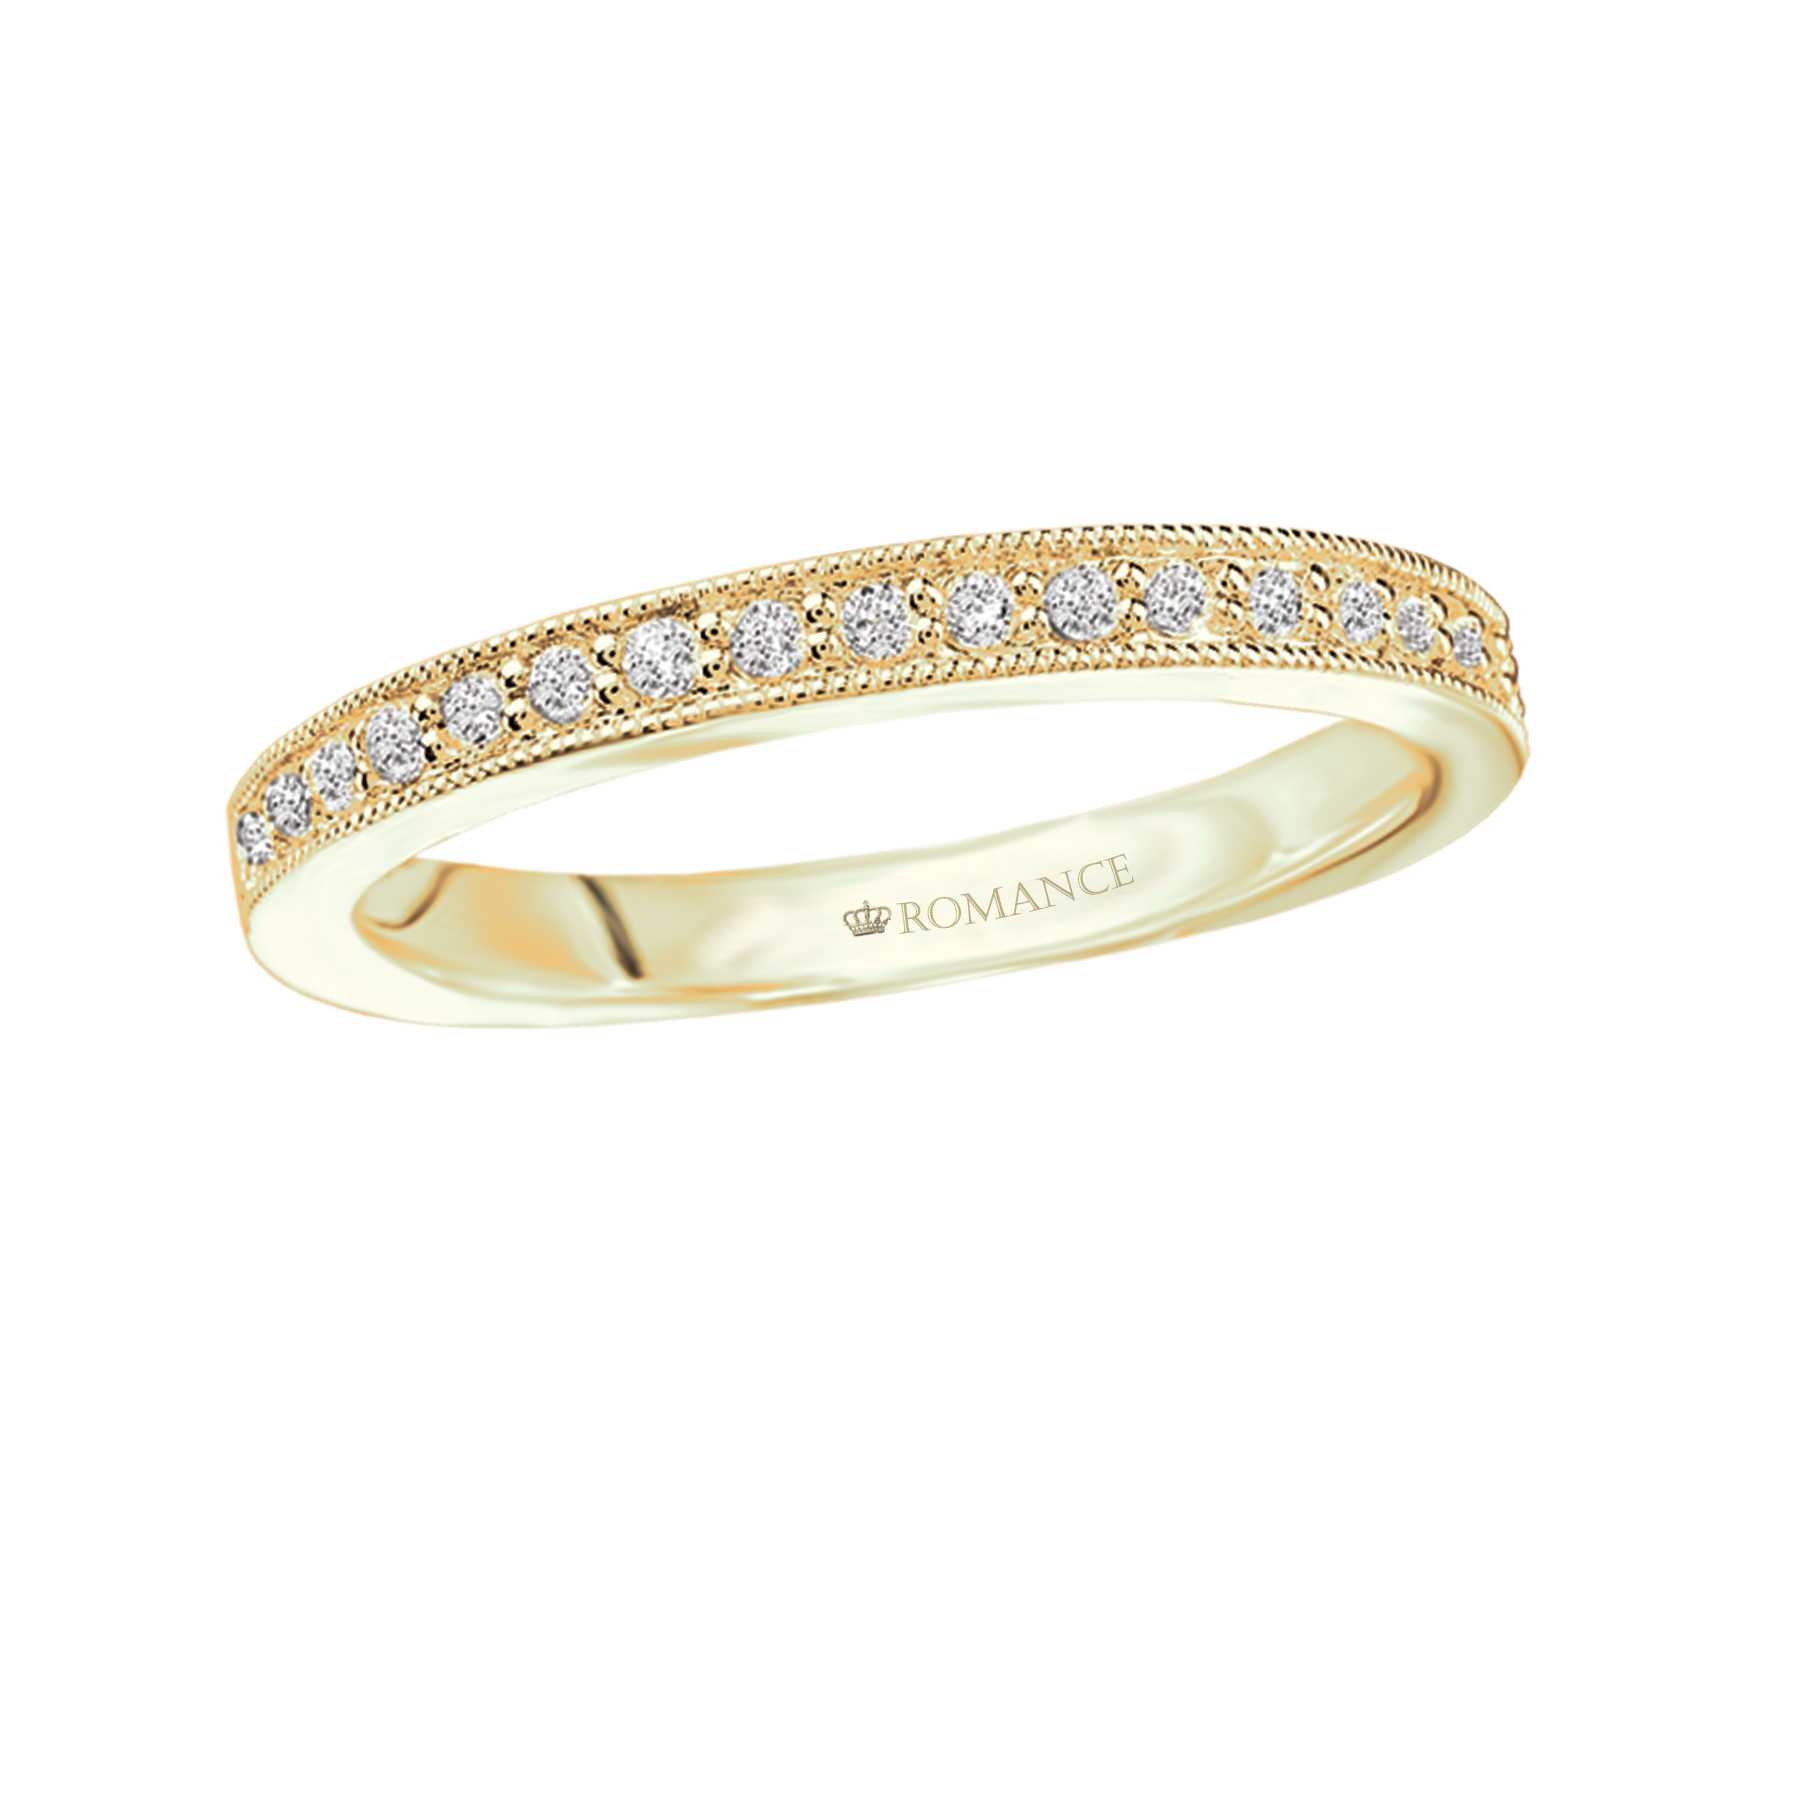 Romance Wedding Bands 117524-WY product image